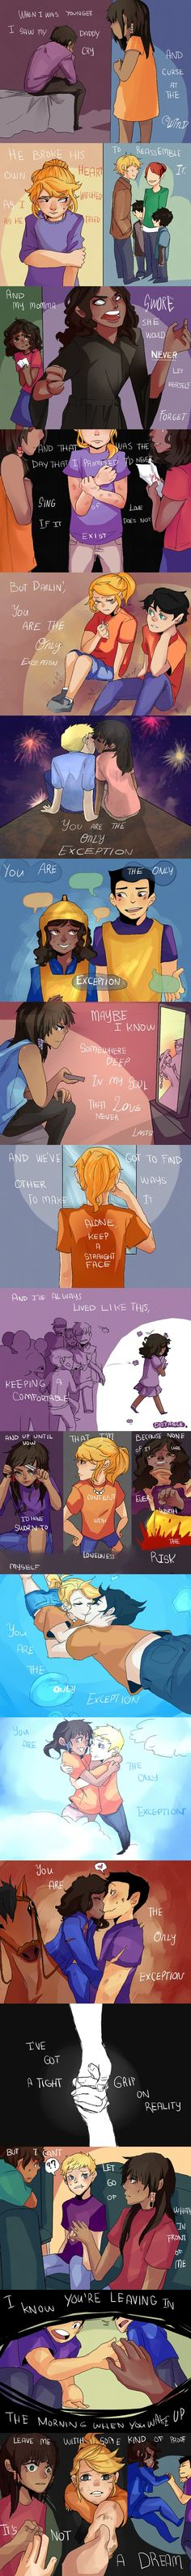 Only Exception- Annabeth, Piper, and Hazel fan art- I love it!!!